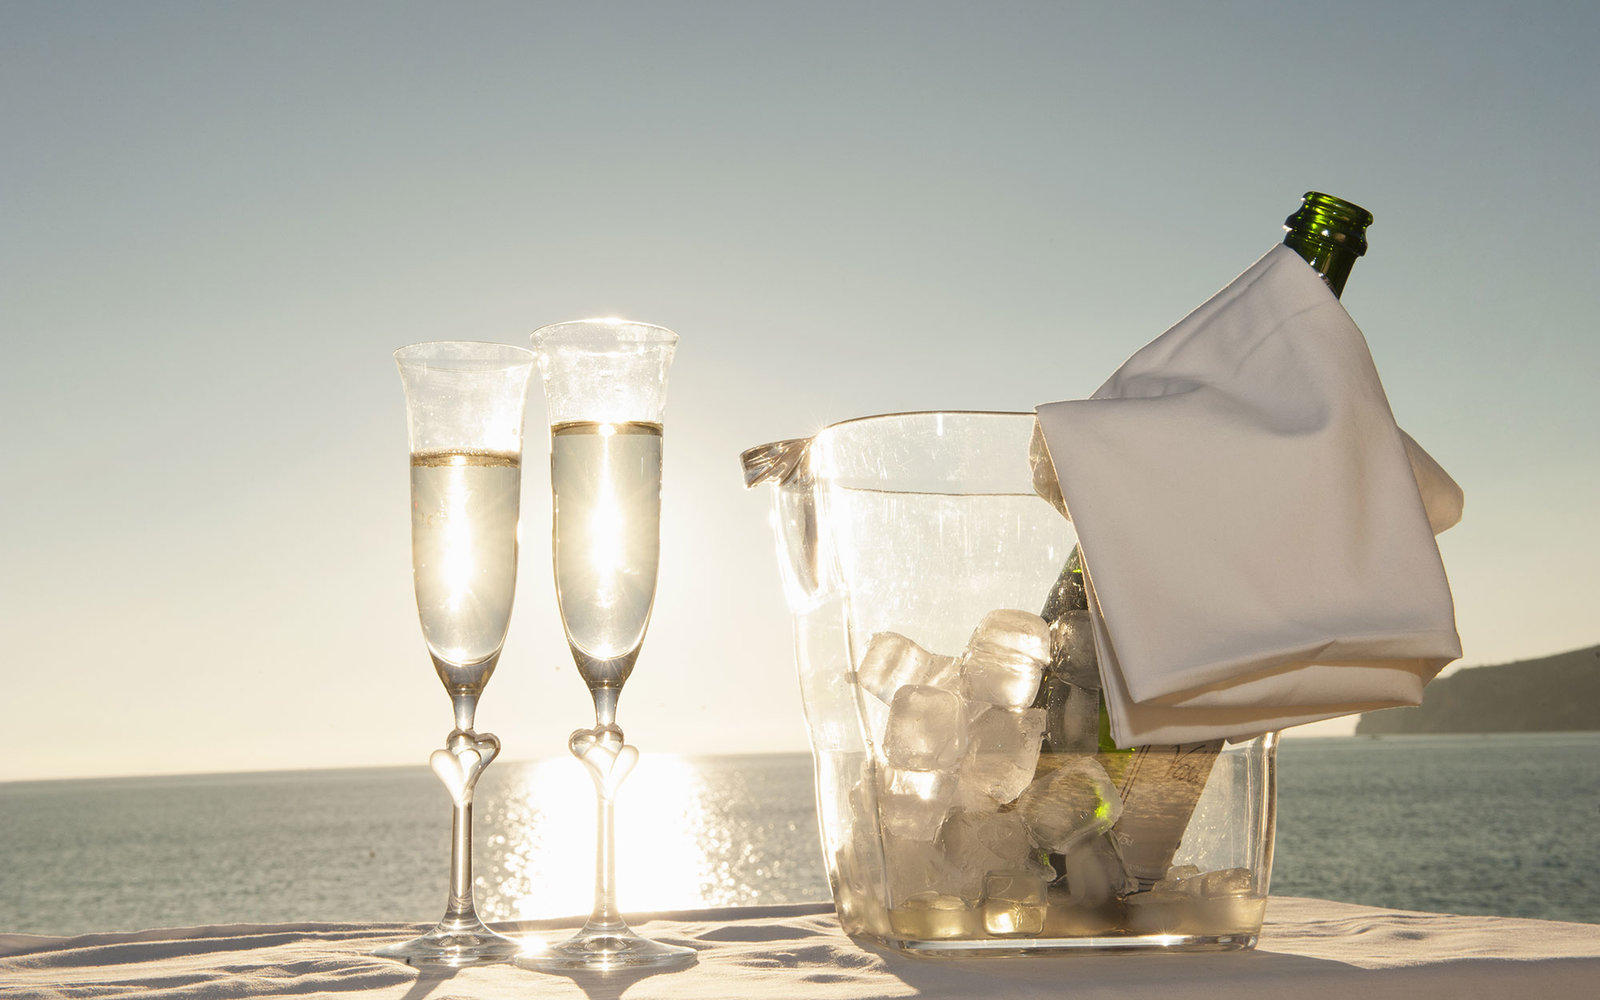 Champagne flutes and bucket against sunset